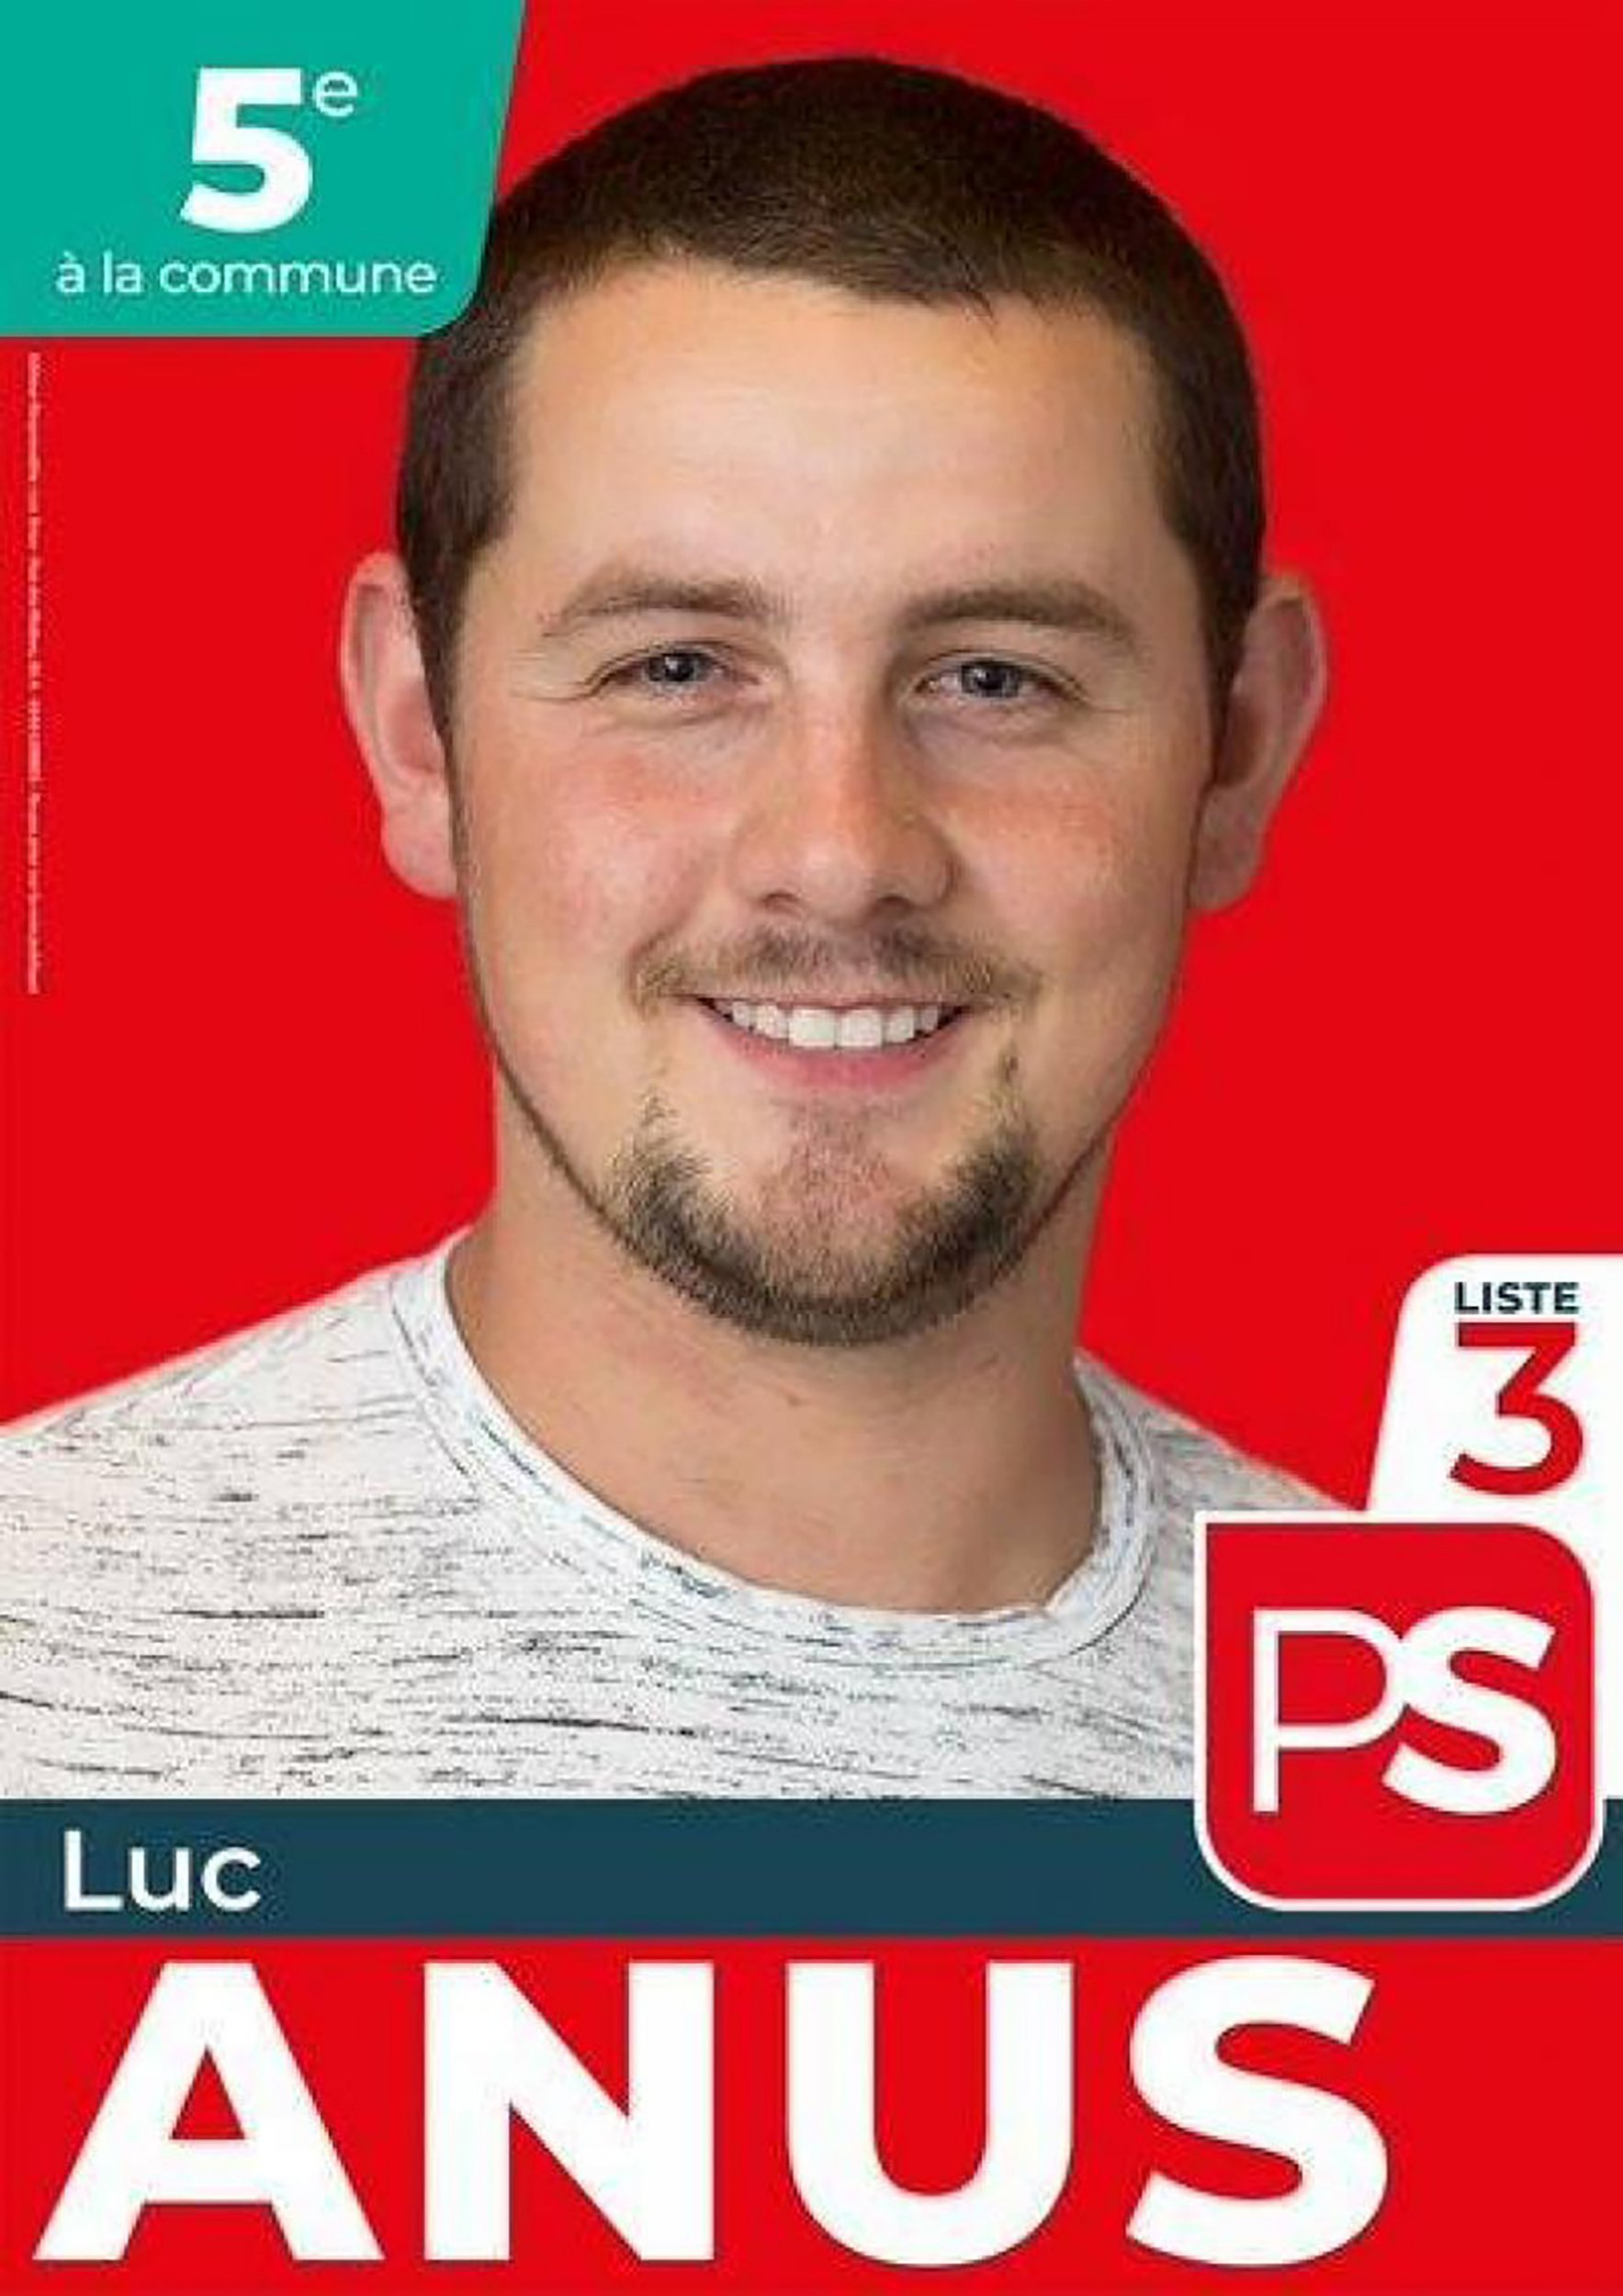 """Pic shows: The campaign poster of Luc Anus A political candidate with the unfortunate surname of 'Anus' has been banned from campaigning on Facebook under his real name. The 26-year-old politician, full name Luc Anus, decided to stand as a council candidate in Lobbes, located just outside the city of Charleroi in southern Belgium's Wallonia region. Anus, who is placed fifth on the list of the dominant Socialist Party (PS) in his hometown, has already experienced a fair amount of rib-tickling during his campaign. When someone uploaded a copy of Anus' election poster to social media, he became a viral hit and the butt of many jokes in Belgium. One netizen wrote: """"That's a beautiful name for a party which f*cks you from behind."""" Other voters have called on Anus to change his family name to something more appropriate. Anus said he is unfazed by all the jokes and negative comments about his name, adding: """"I can deal with it."""" On Facebook, Anus had to adjust his name to 'Luc Anu' after the American social media company banned his real surname for being too offensive. Anus said: """"Facebook just does not accept my name."""" However, the Belgian politician did find some support as well. One netizen said: """"Why should he change his family name? You should always be proud of it."""" According to the most recent data from the Belgian civil registry, there are 49 people with Anus as their last name and they all live in the French-speaking Wallonia region of the country."""